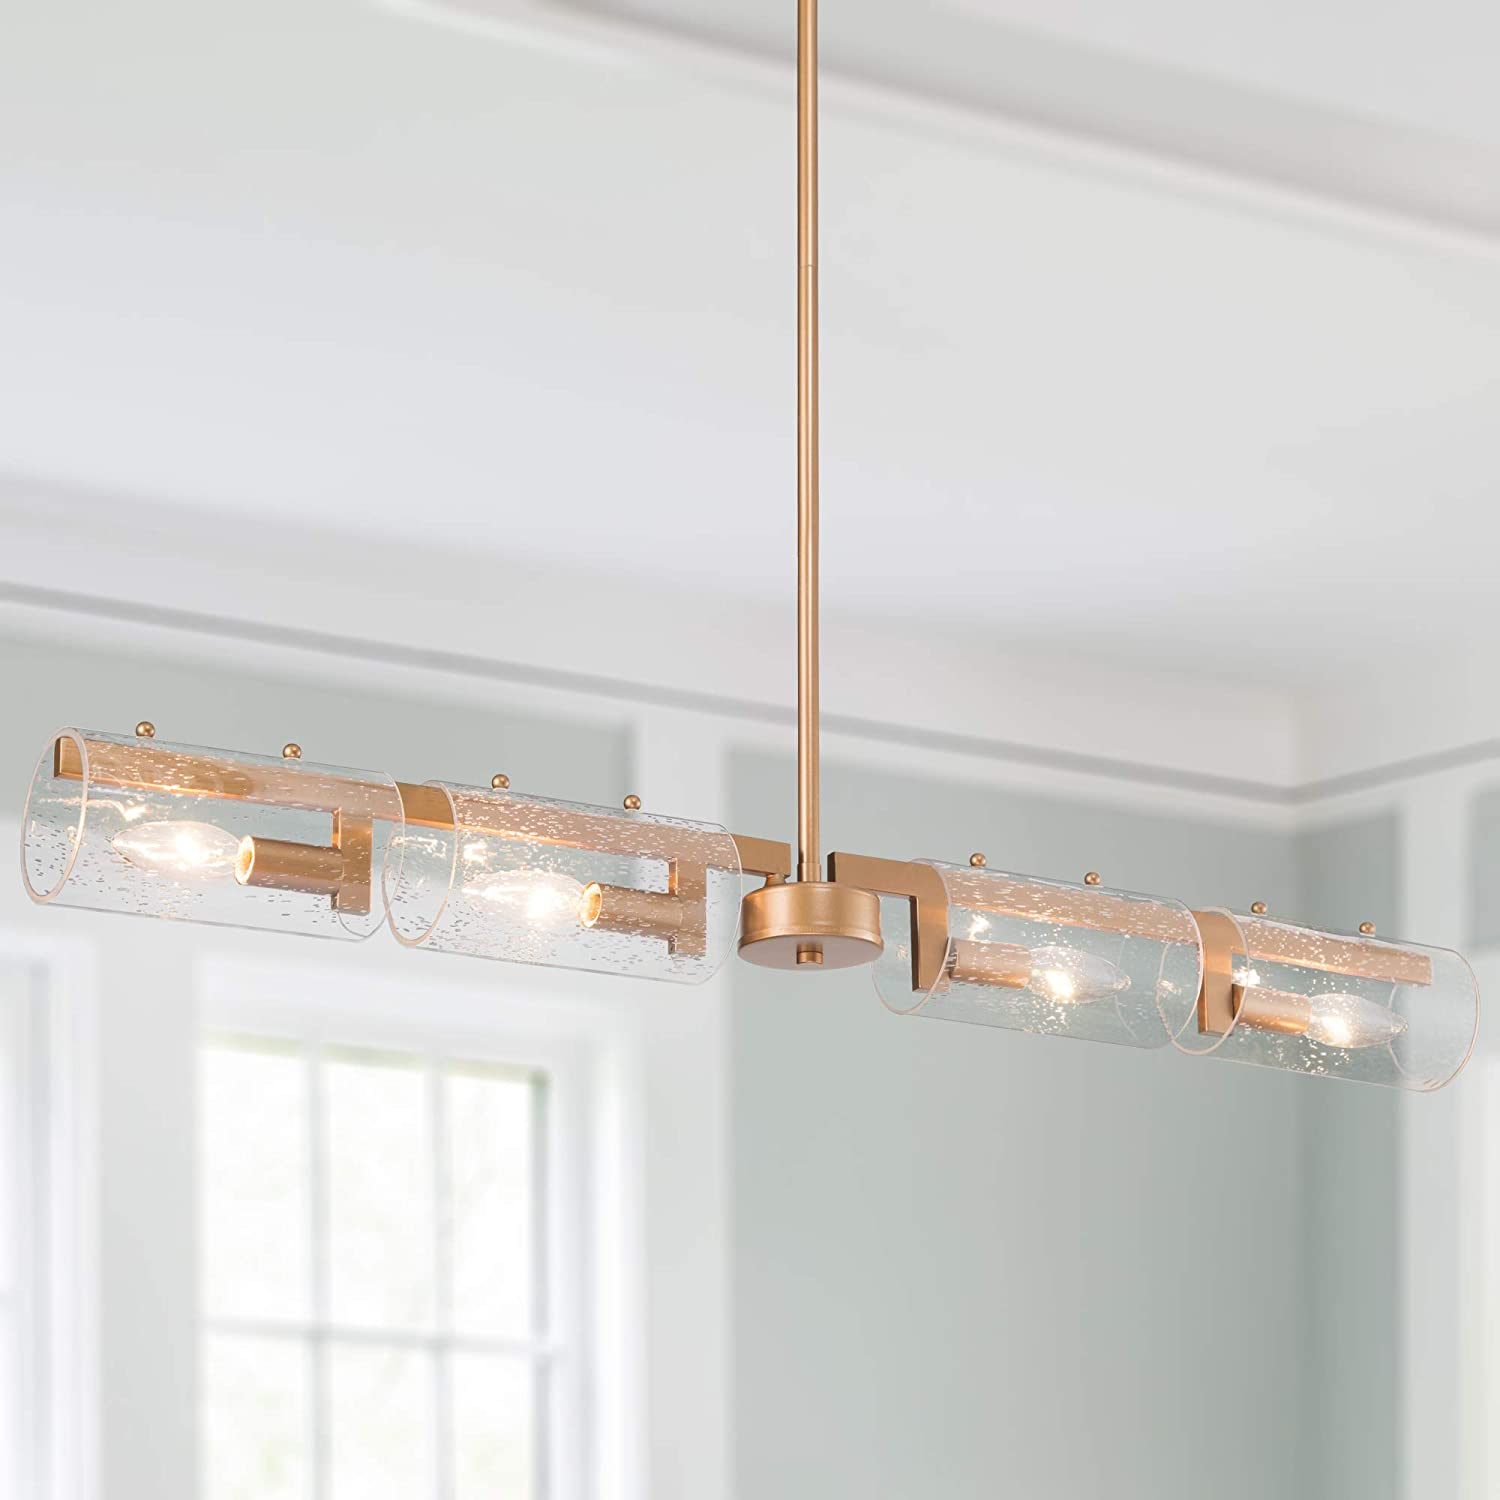 """LOG BARN Antique Brass Chandelier, Gold Lighting for Kitchen Island with Seeded Glass Shade, Modern Dining Room Lighting Fixtures Hanging, 4 Lights, L34.5"""" x W3.5"""""""